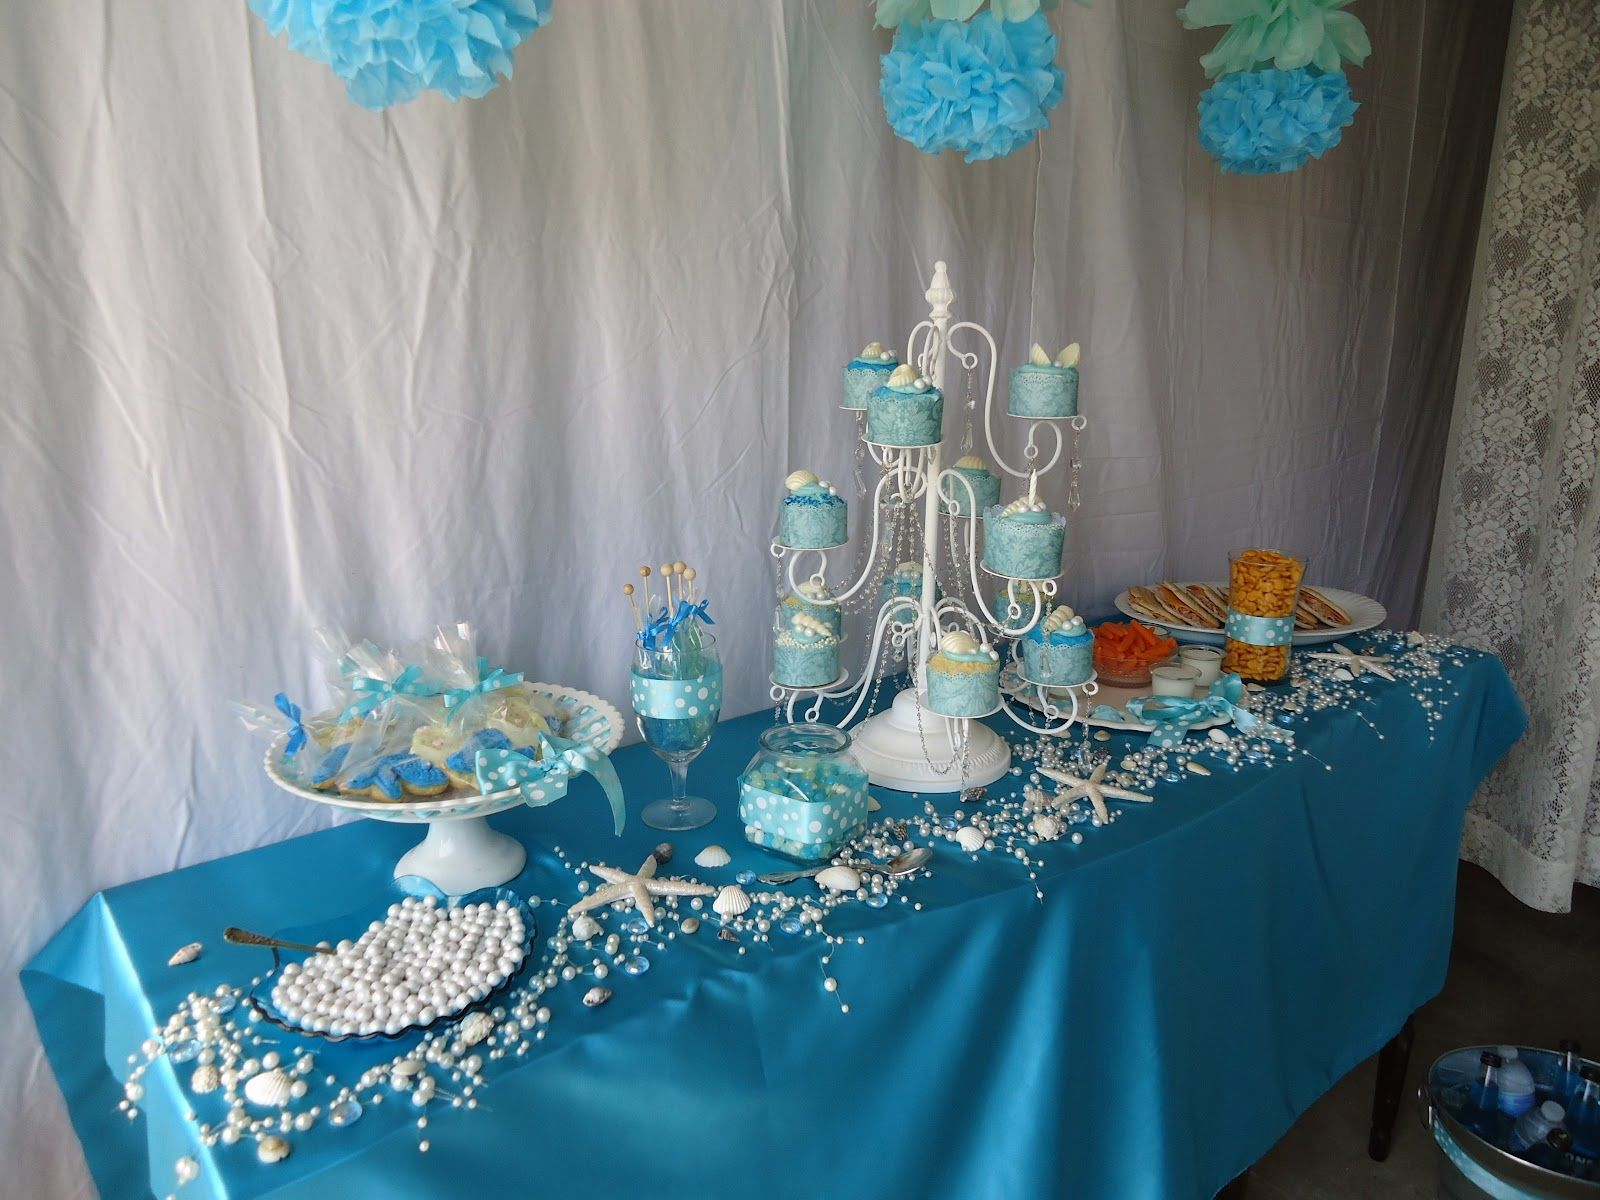 WHIMSICAL MERMAID PARTY IDEAS | Mermaid party decorations ...